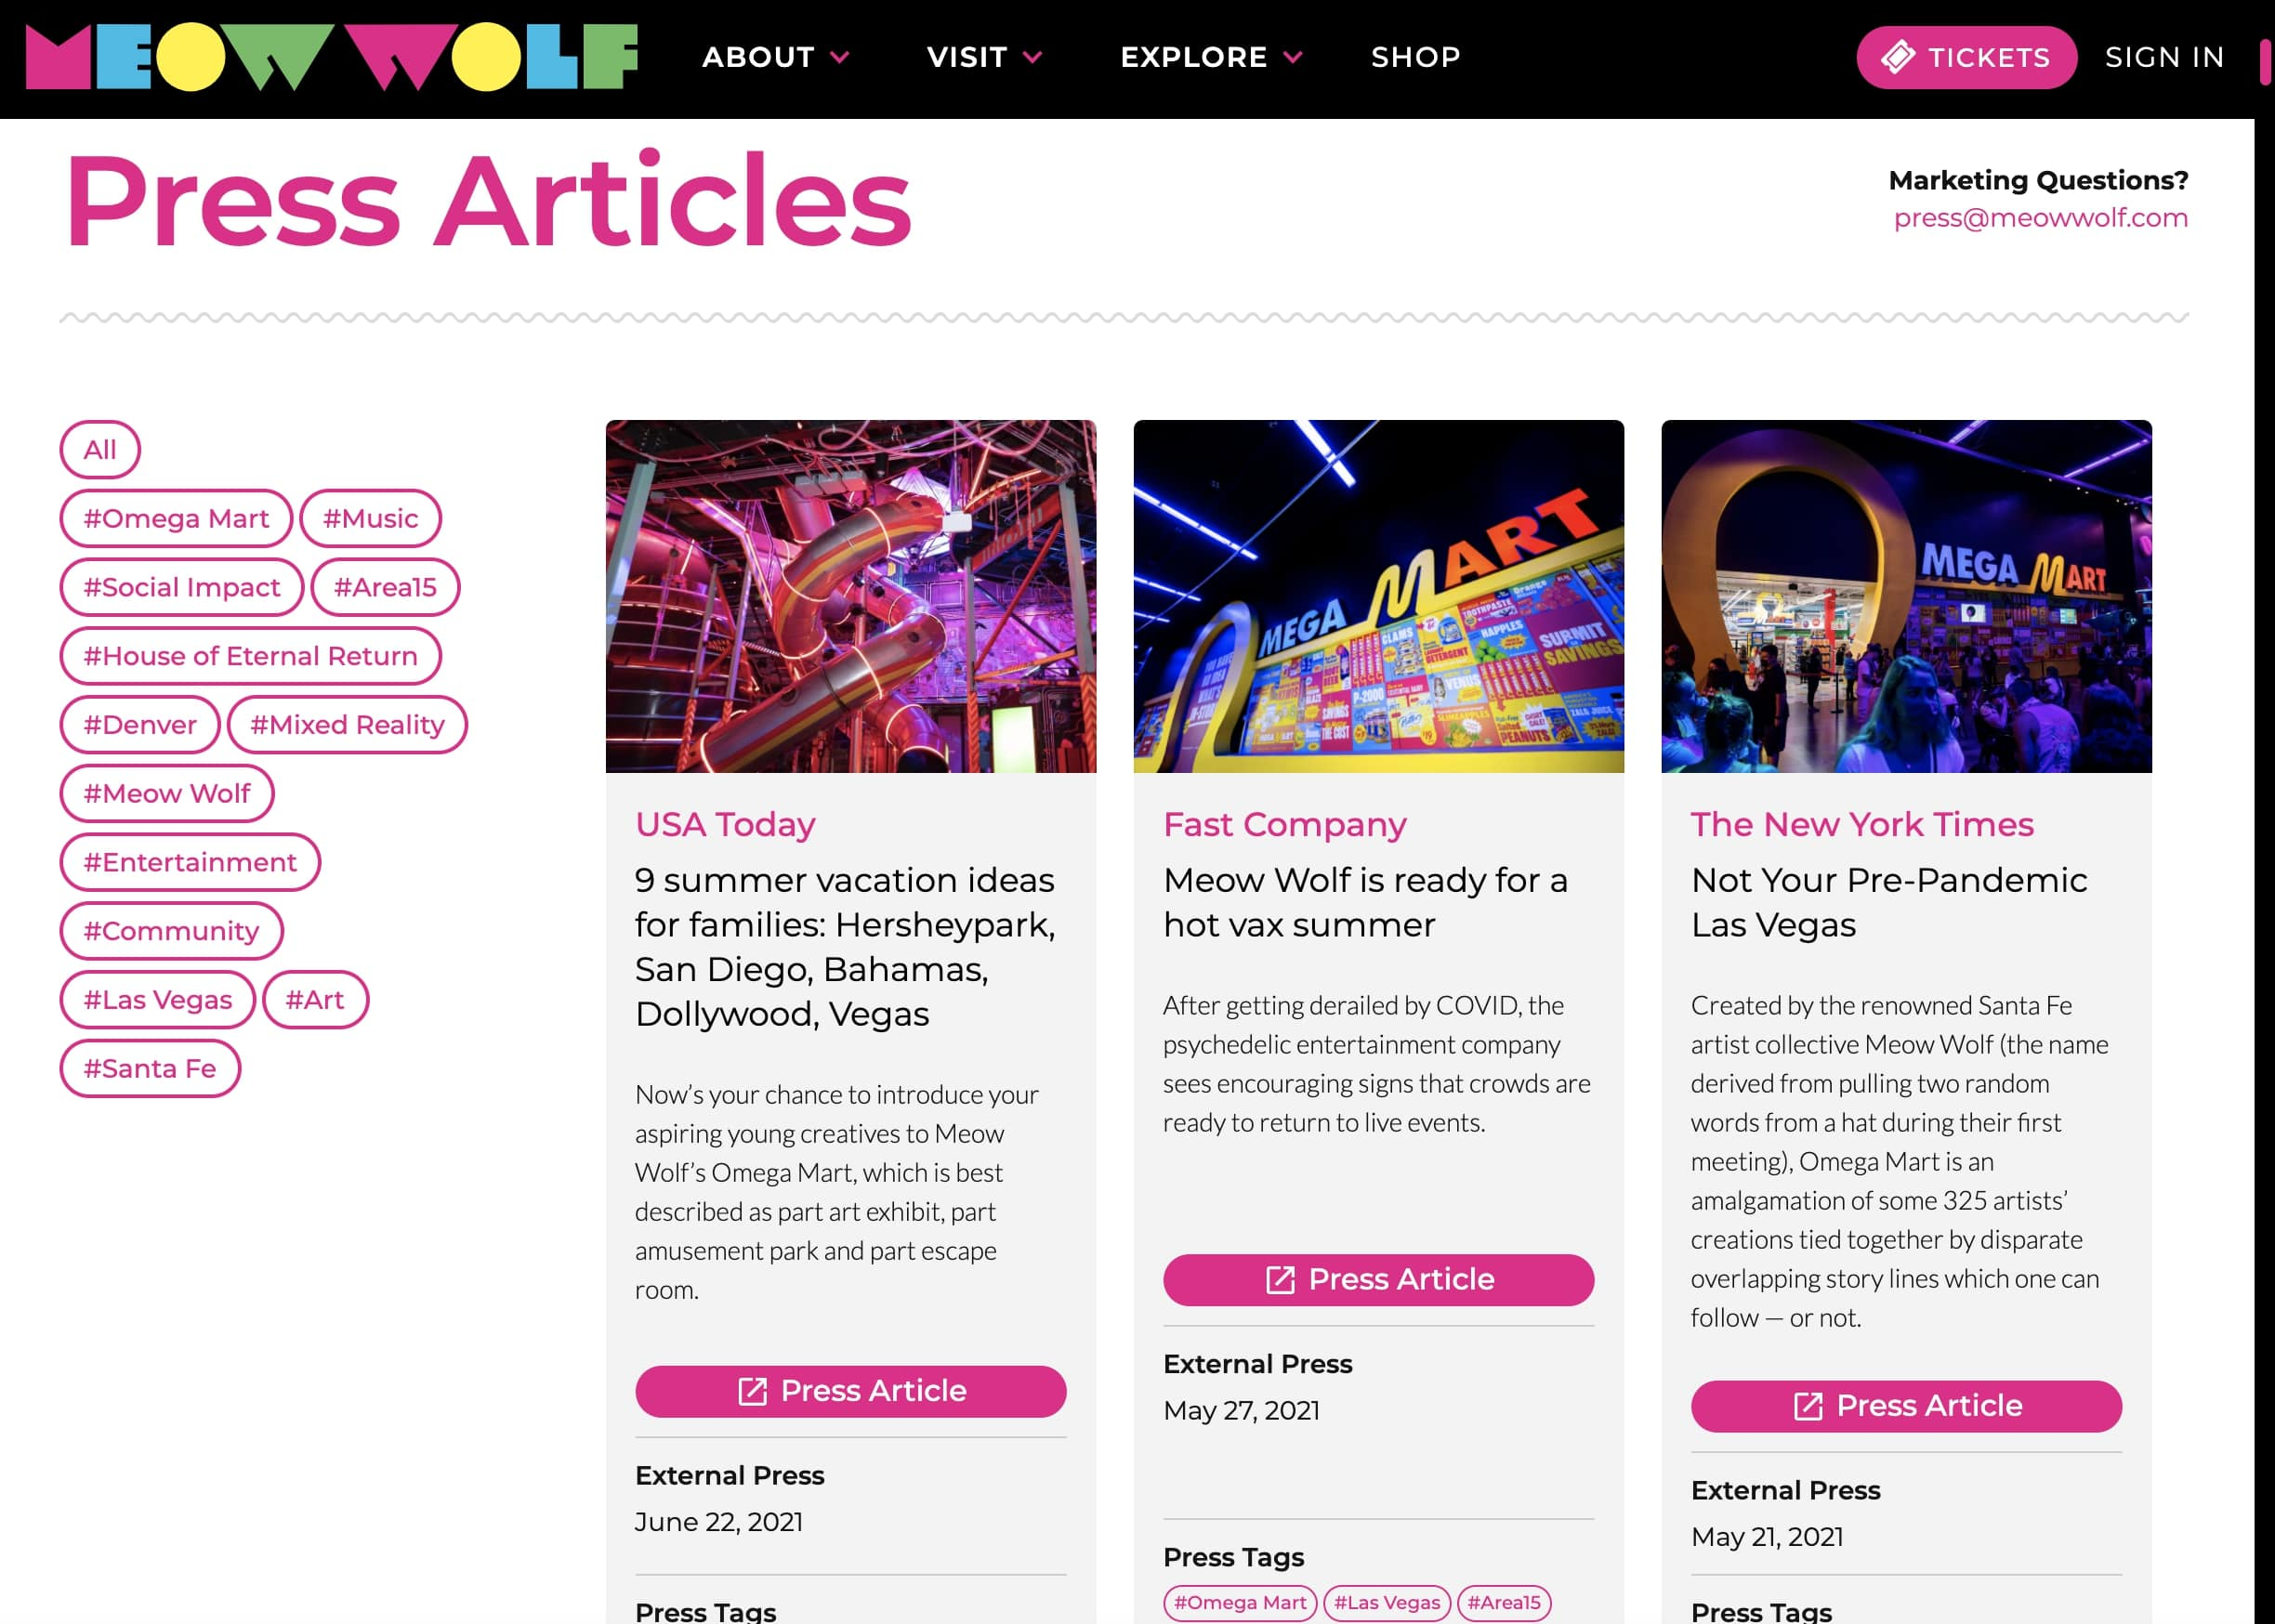 An image of the Meow Wolf press articles page.